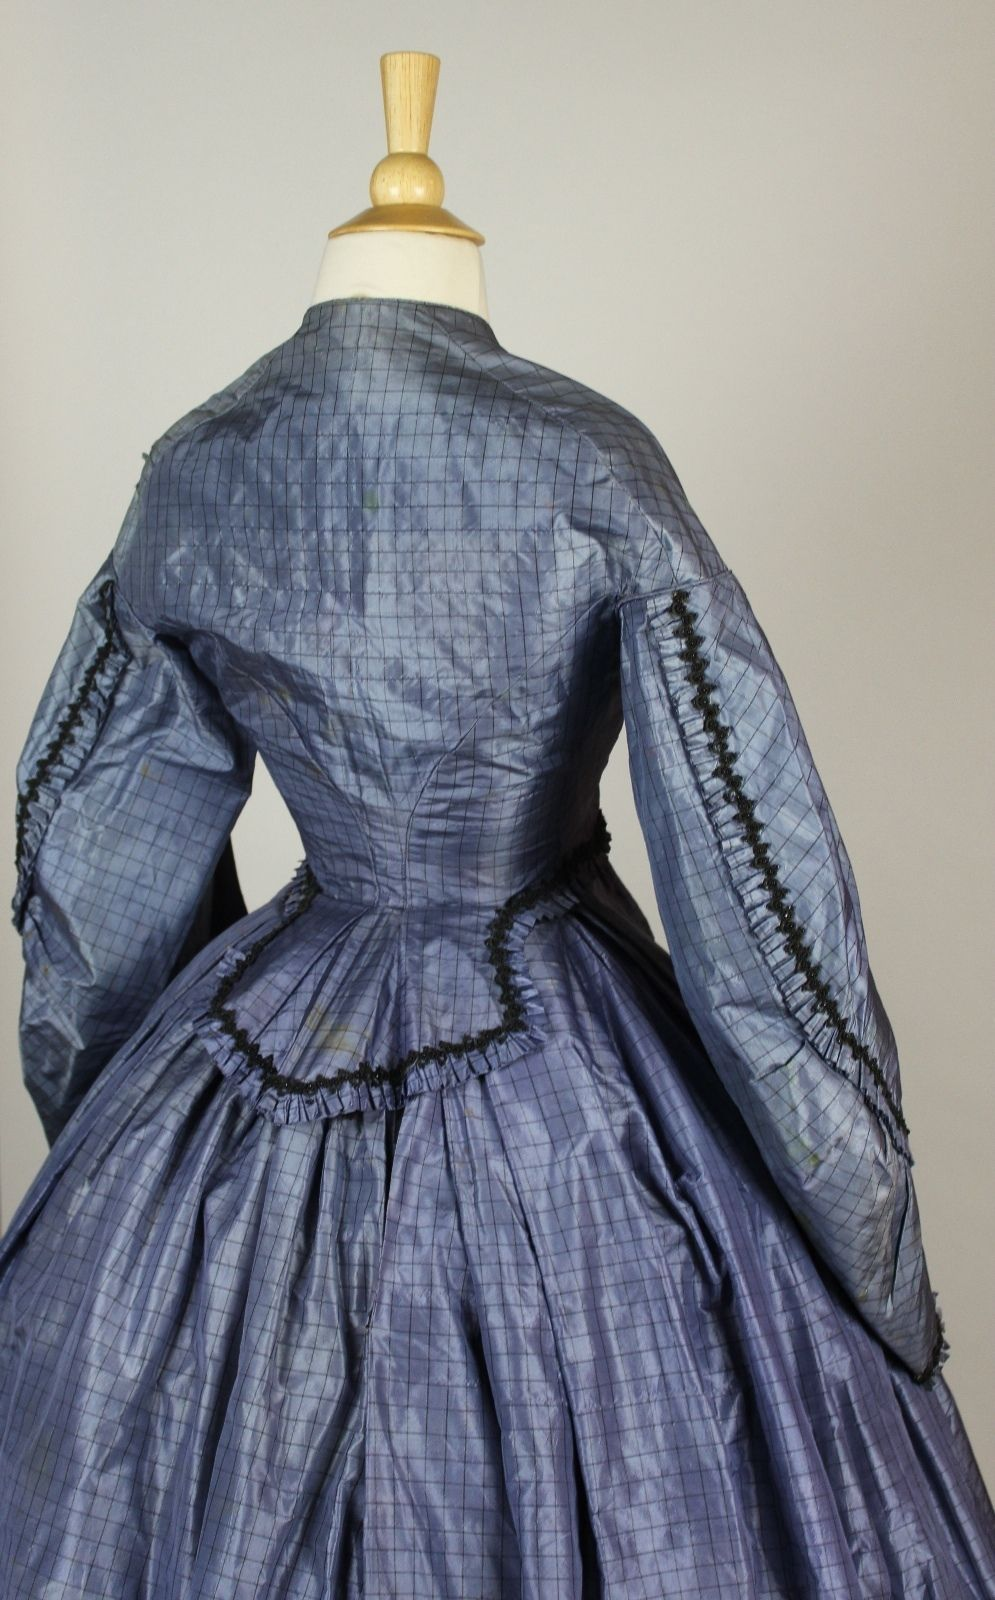 Museum deaccessioned two piece periwinkle blue silk wedding gown c